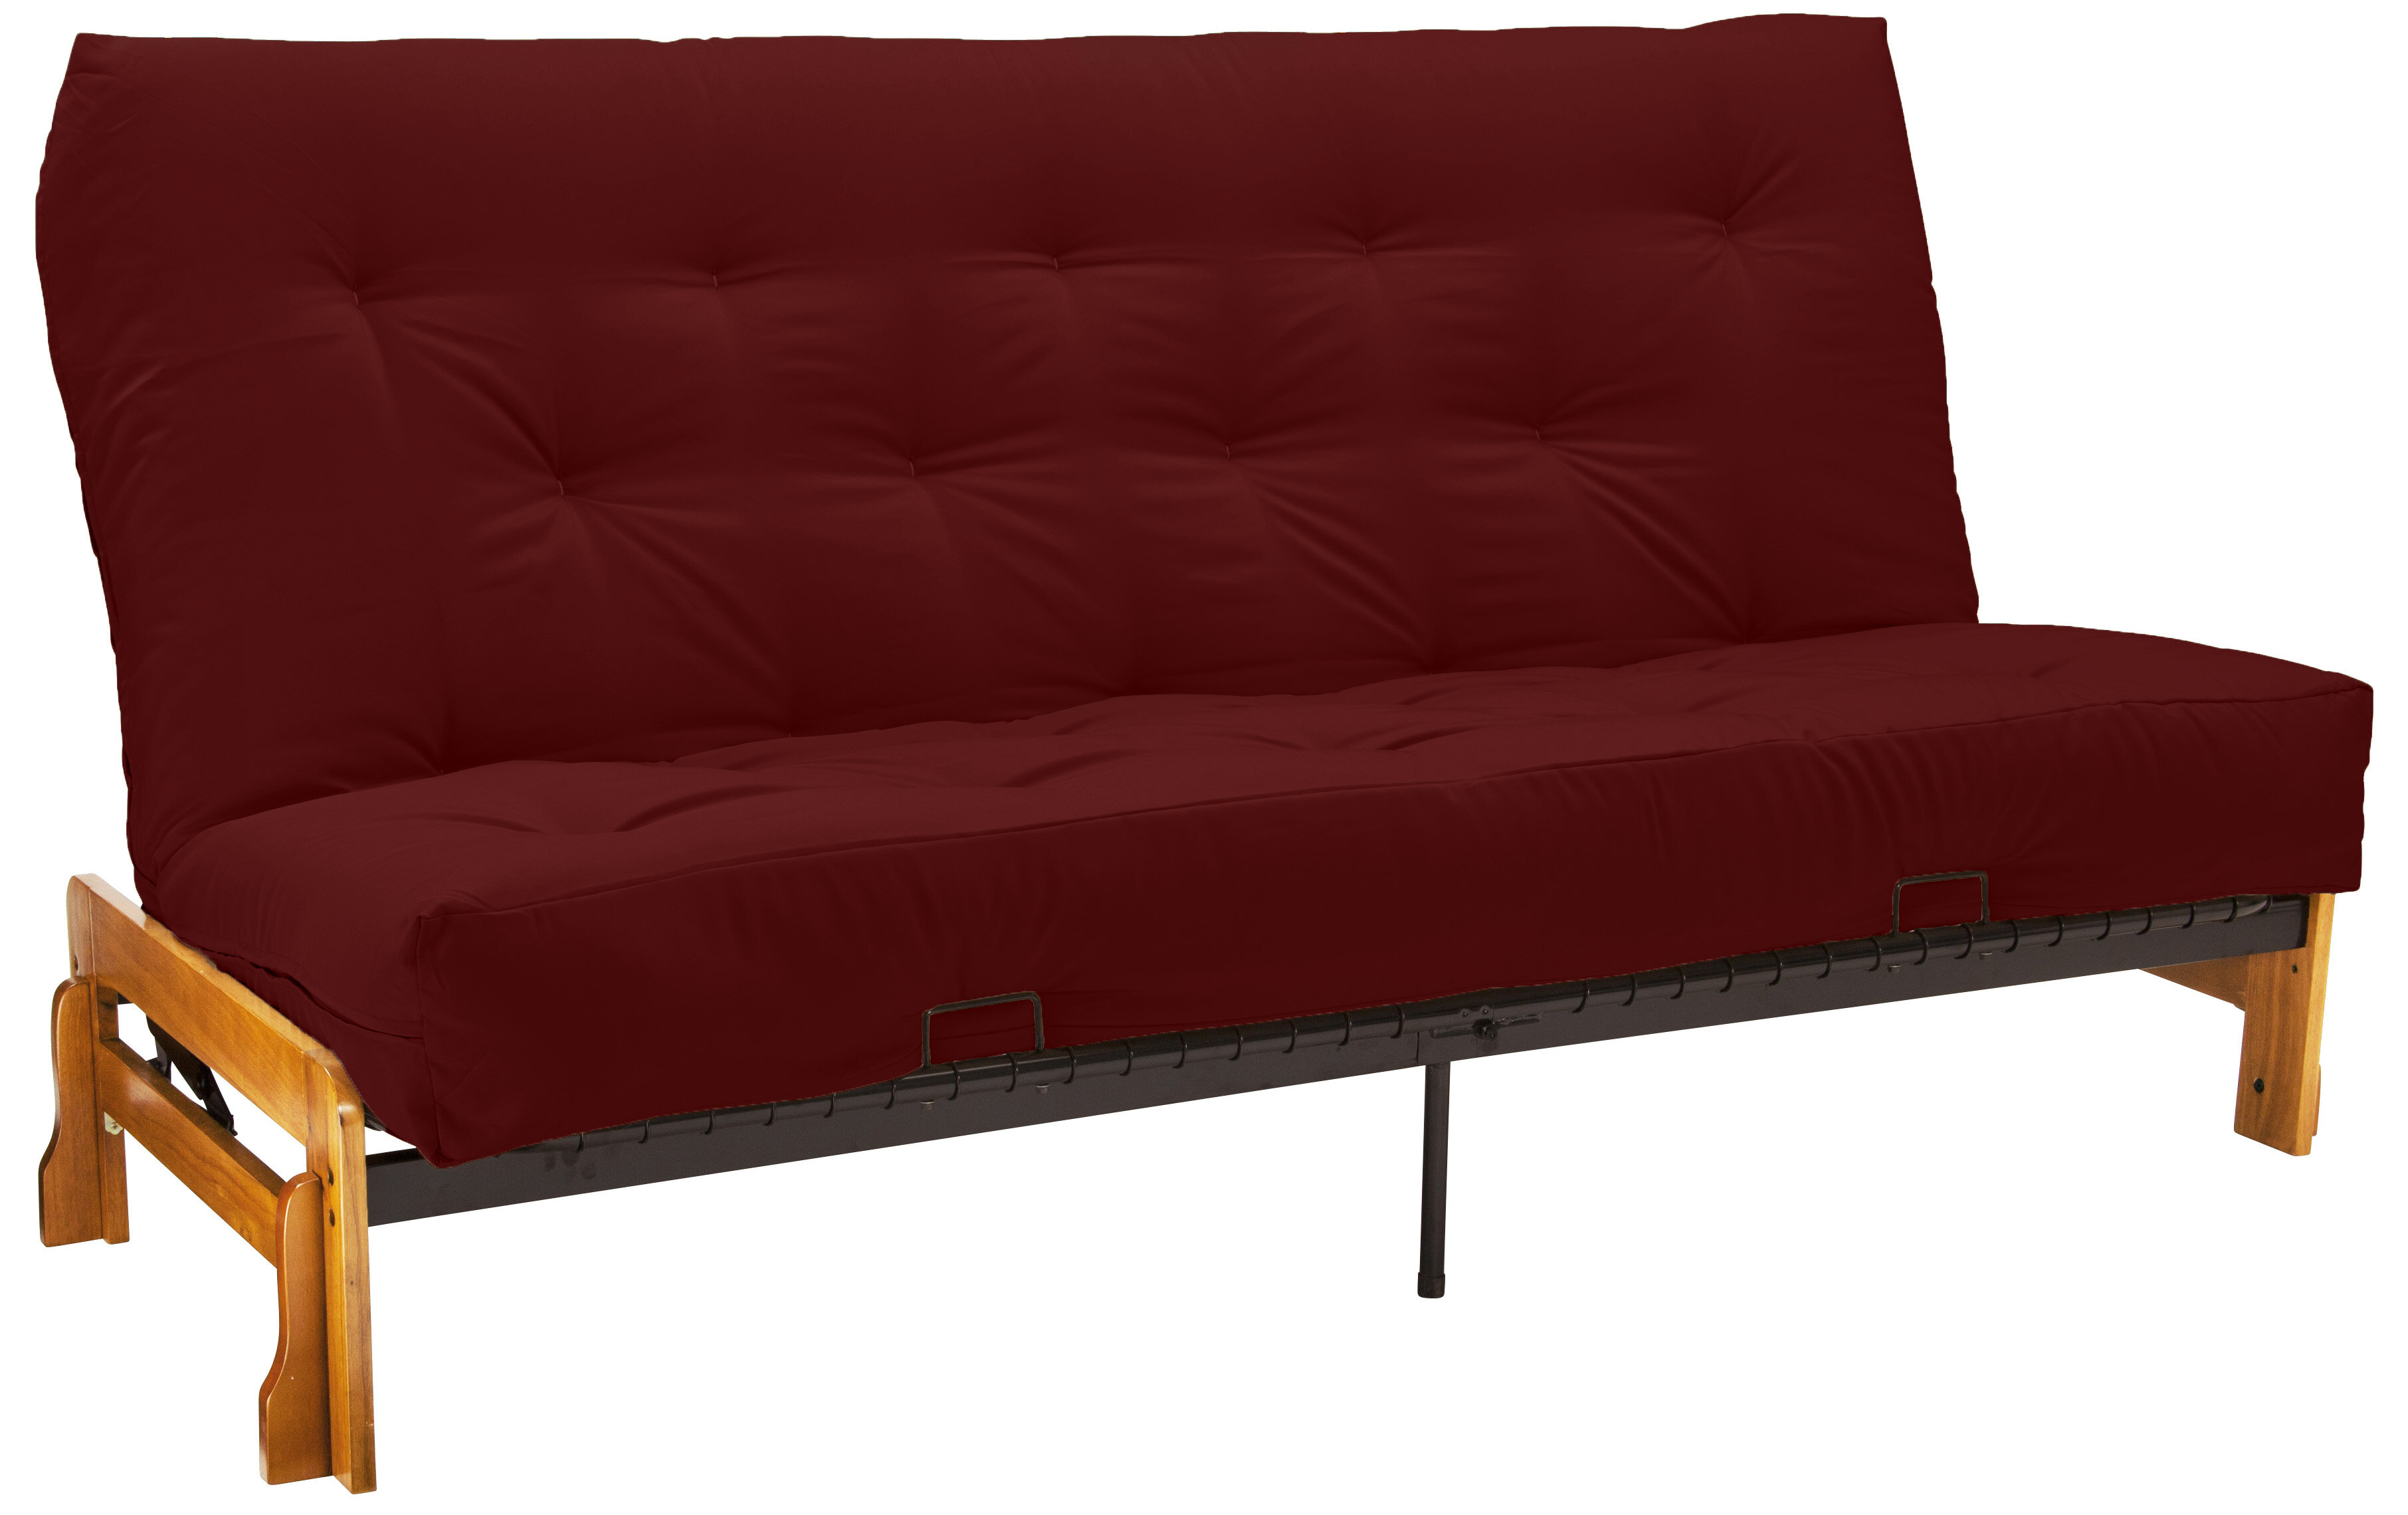 Epic Furnishings Llc Magnificence 10 Foam Full Size Futon Mattress Wayfair